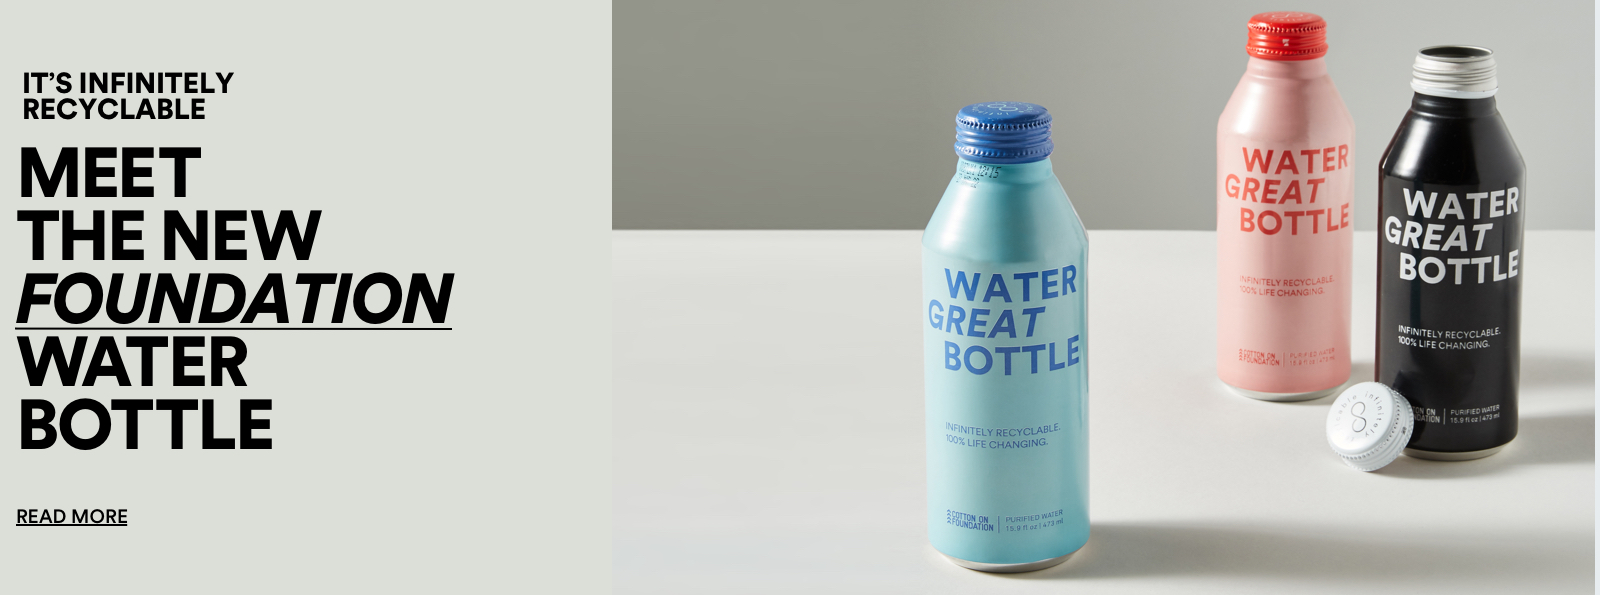 Meet the new Foundation Water Bottle. Click to Read More.